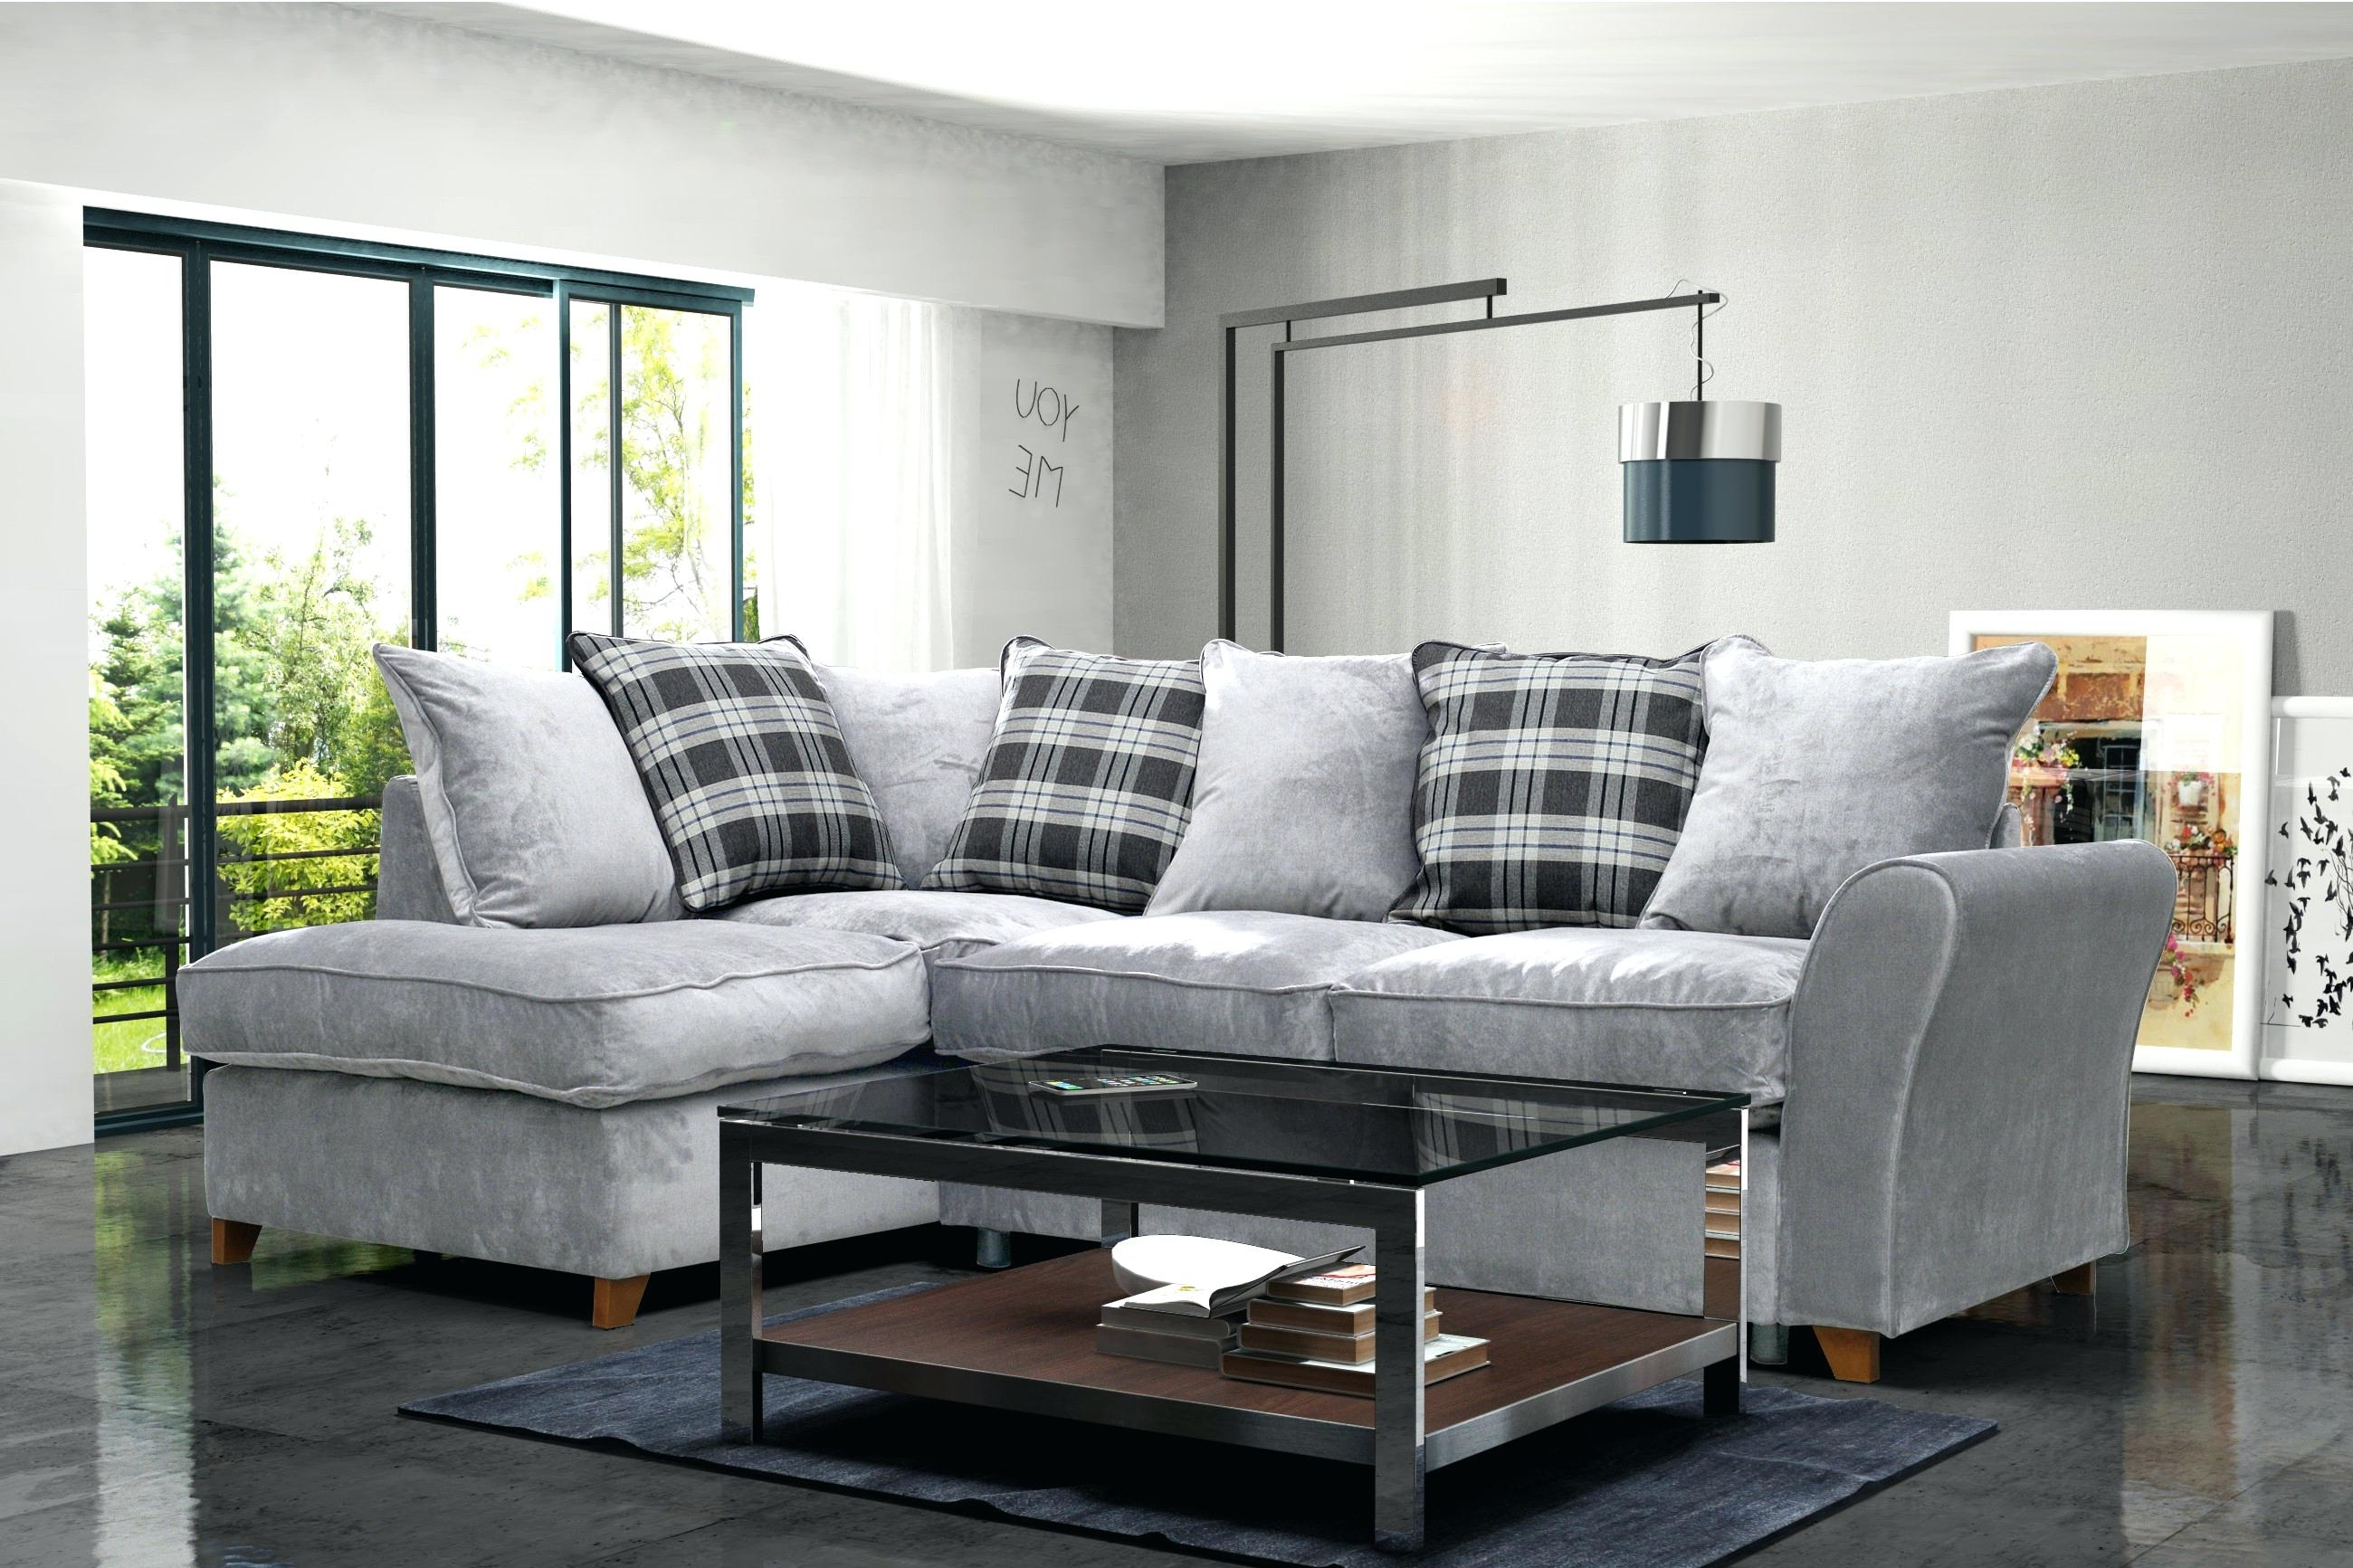 Widely Used Living Room Furniture Pillows Throw Sofa Pillow Covers Cushions For Stratford Sofas (View 10 of 15)